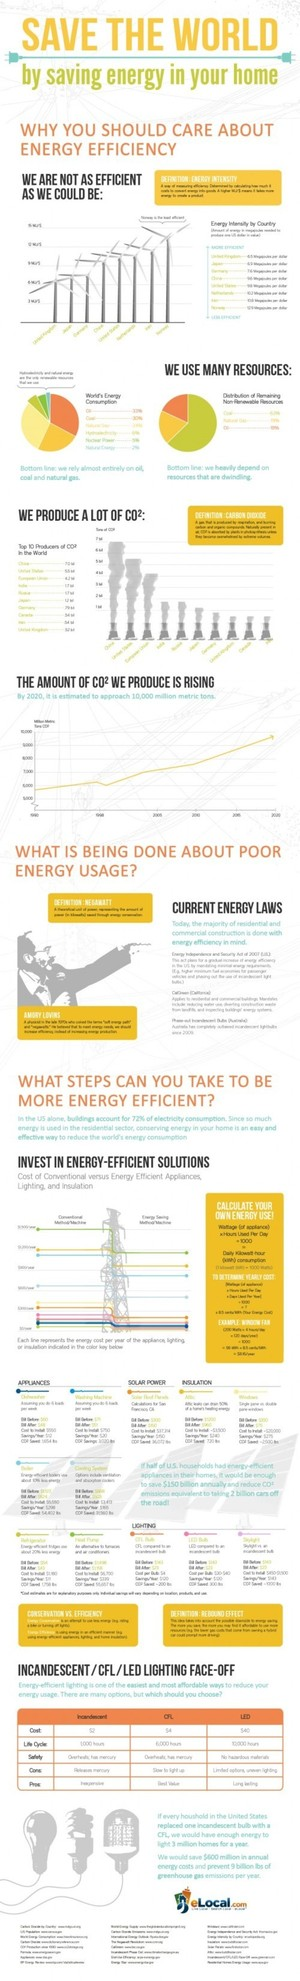 Save the World by Saving Energy in your Home via @visually